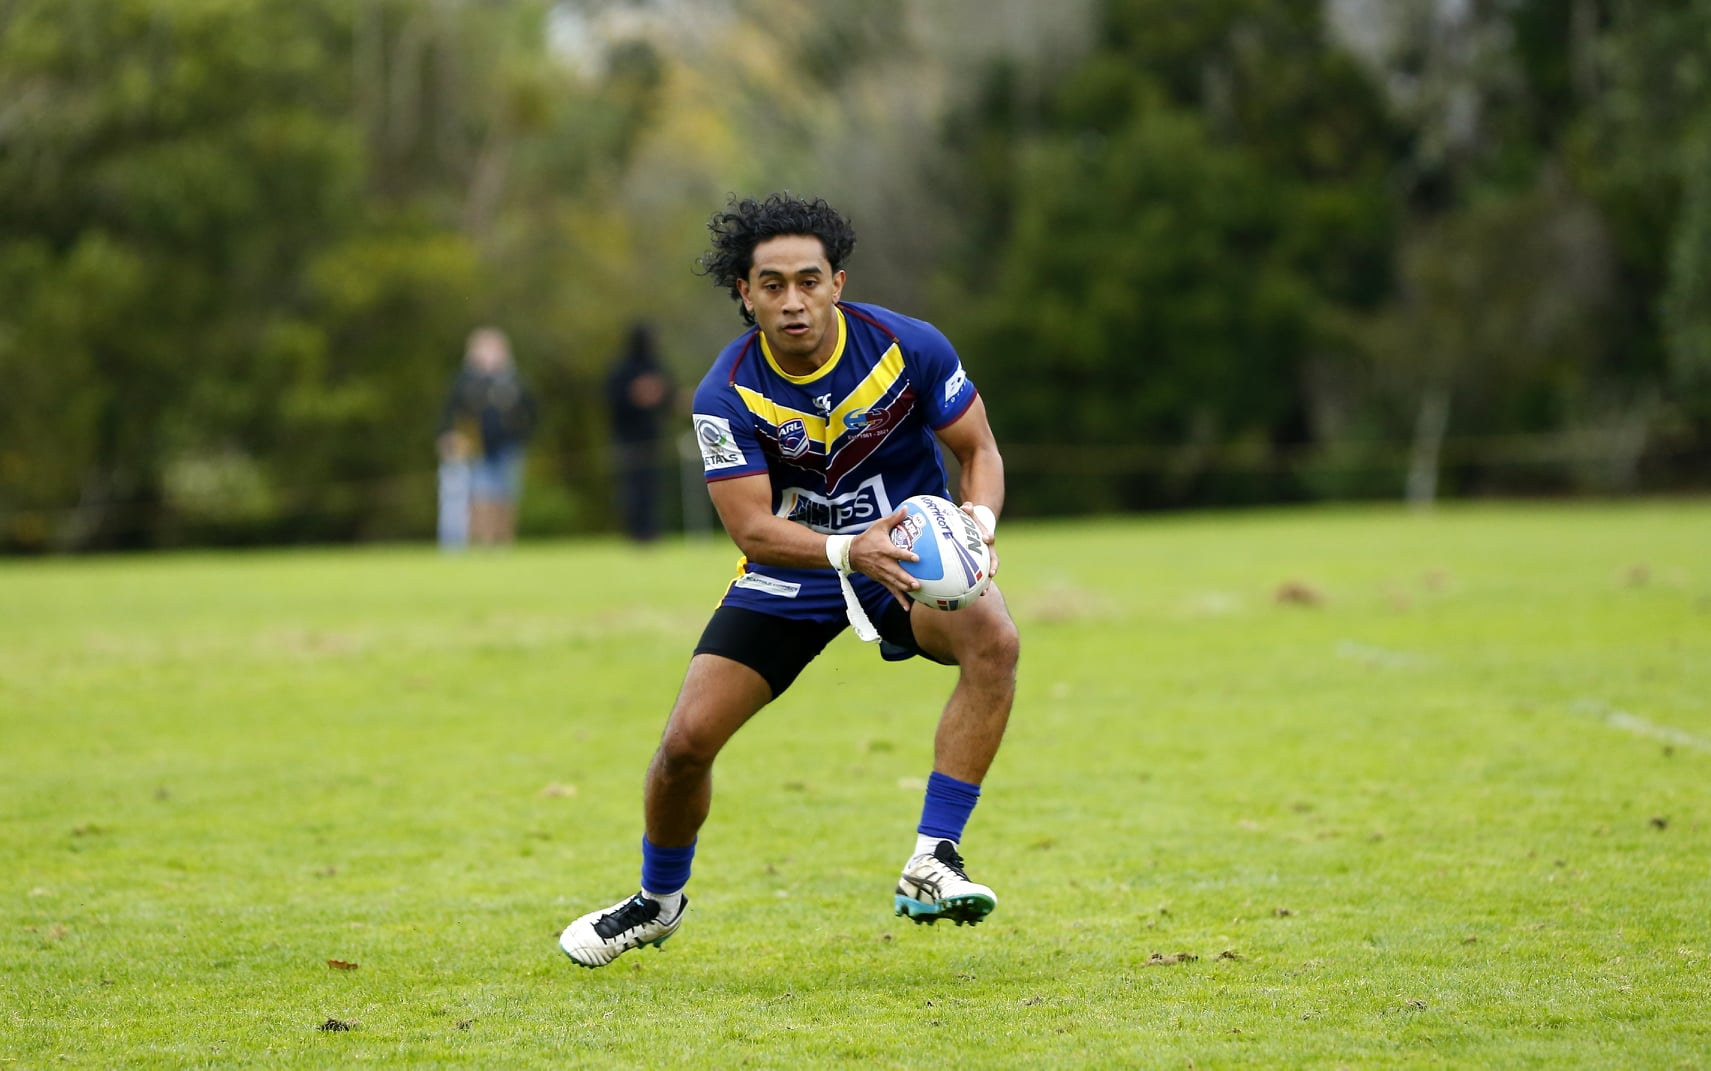 Howick suffer first loss of the season in Fox Premiership, Marlins remain undefeated in Championship